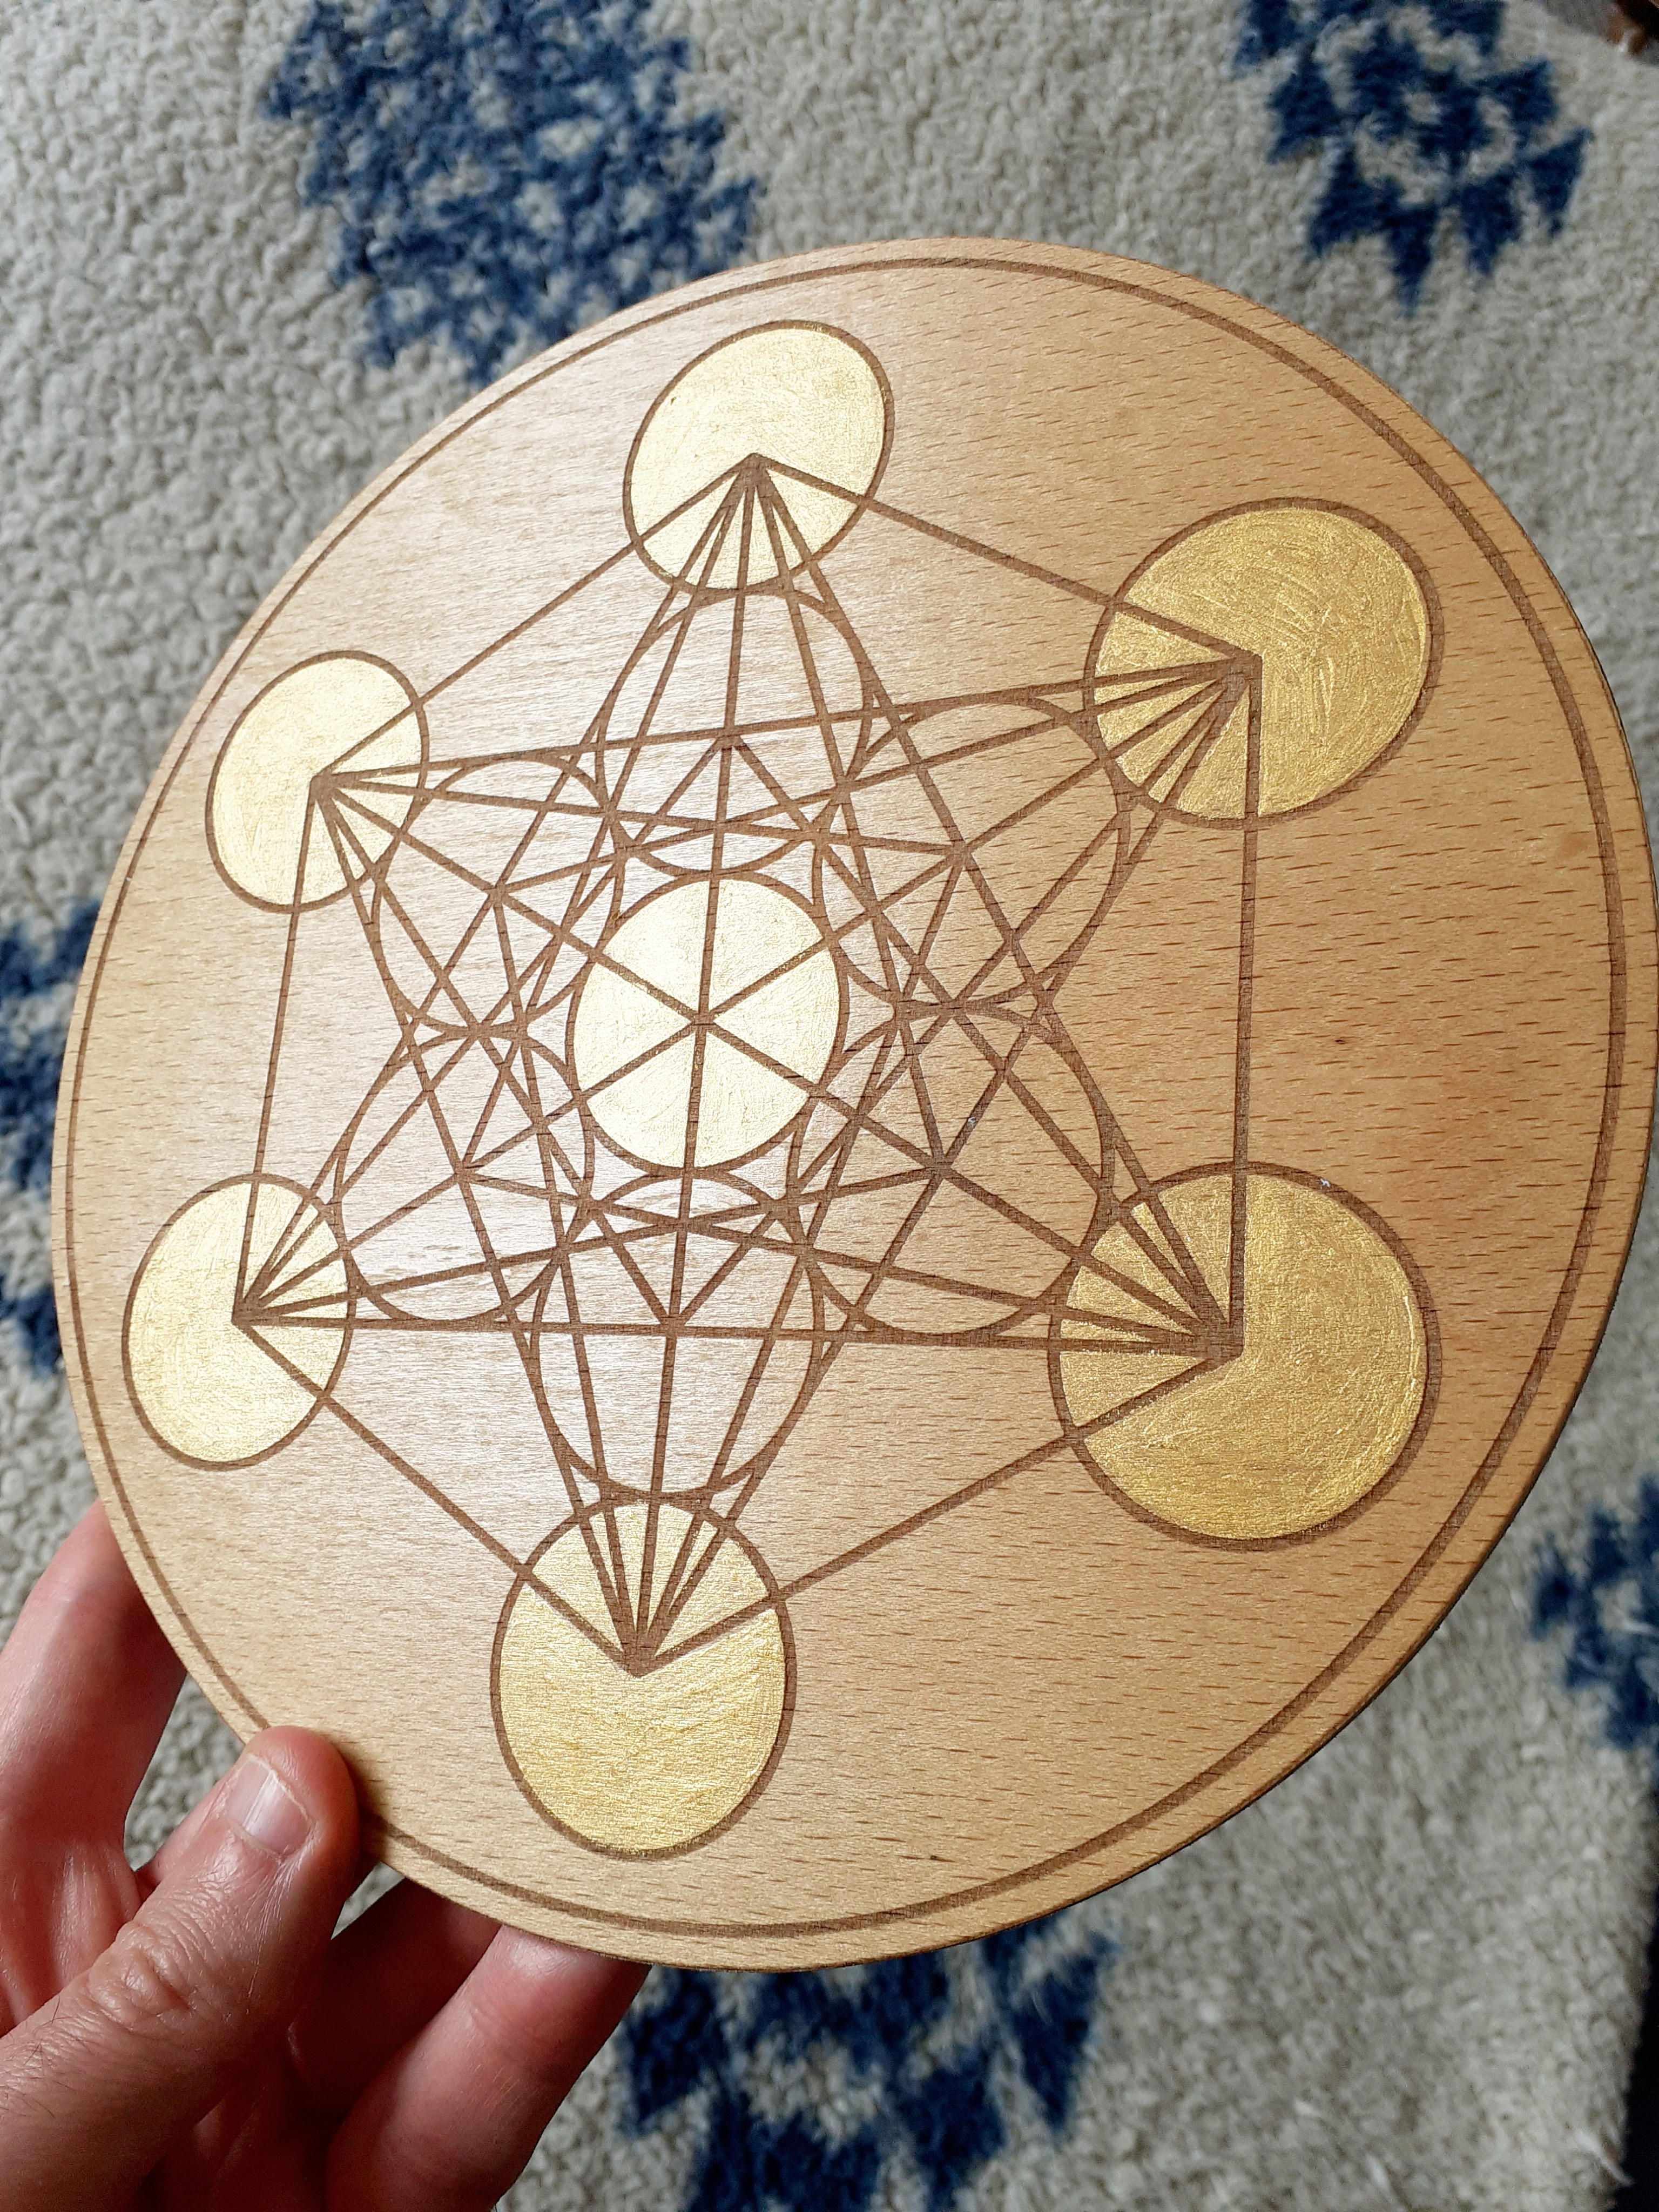 Metatrons cube crystal grid base, etched wood with gold paint